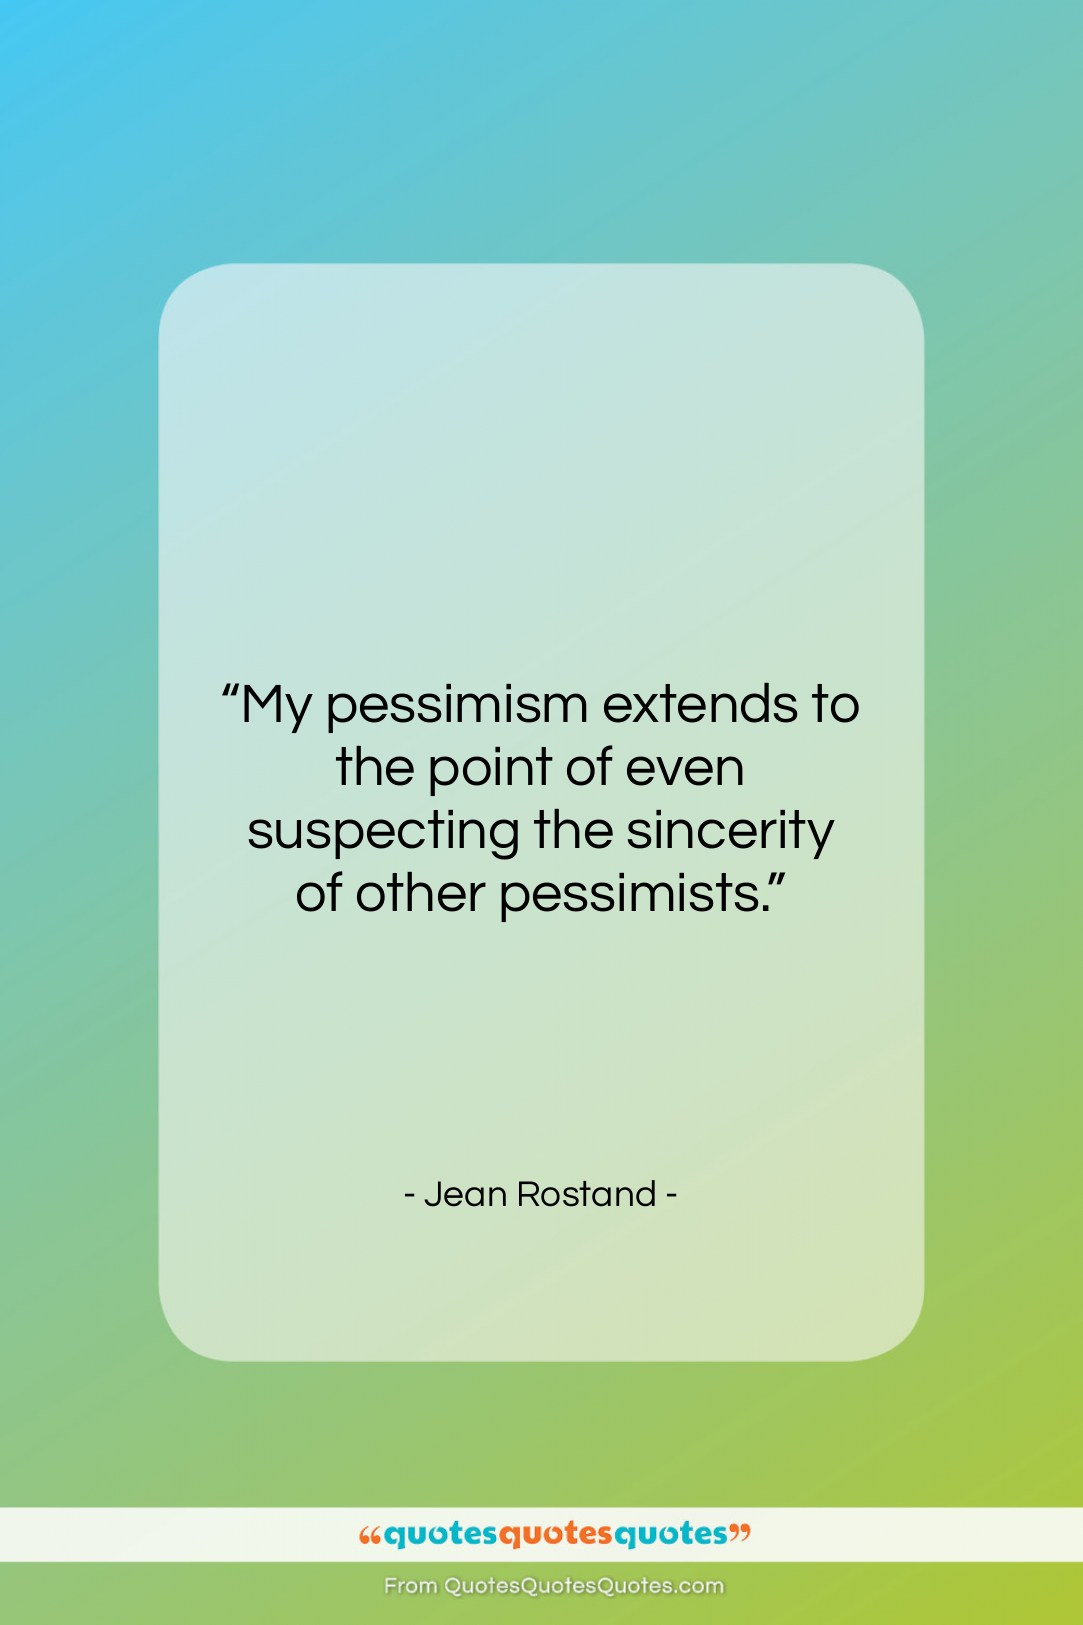 """Jean Rostand quote: """"My pessimism extends to the point of…""""- at QuotesQuotesQuotes.com"""